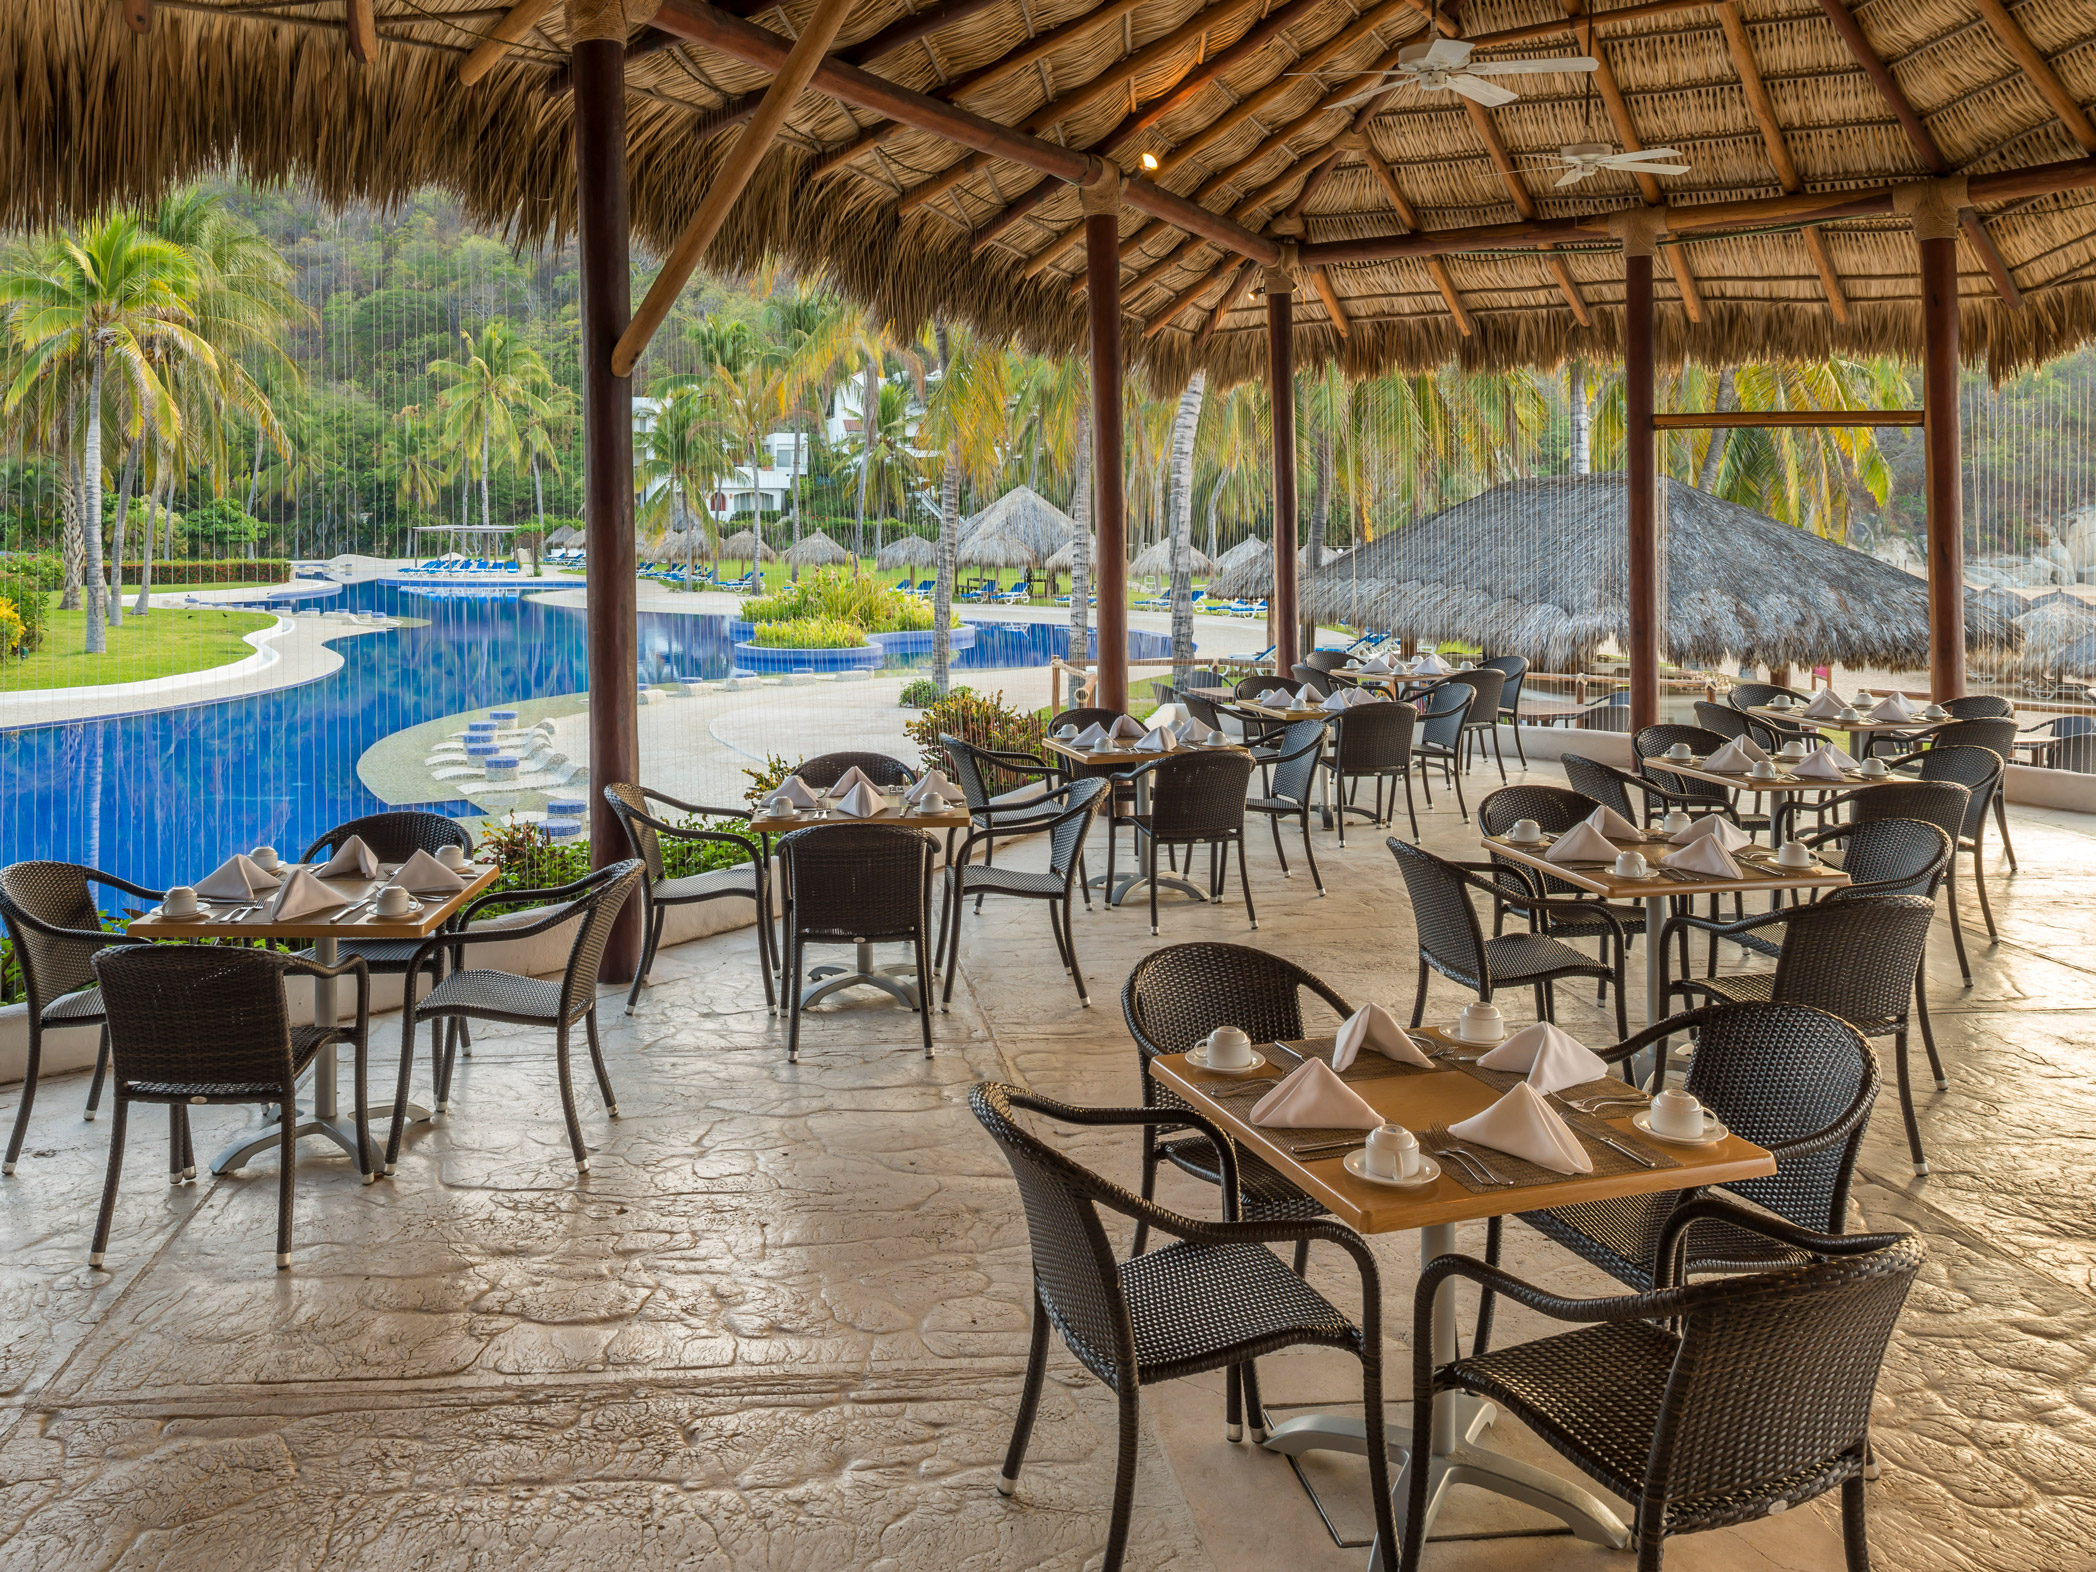 Camino Real Zaashila Hotel Map Restaurants And Bars Camino Real Zaashila Huatulco Transat